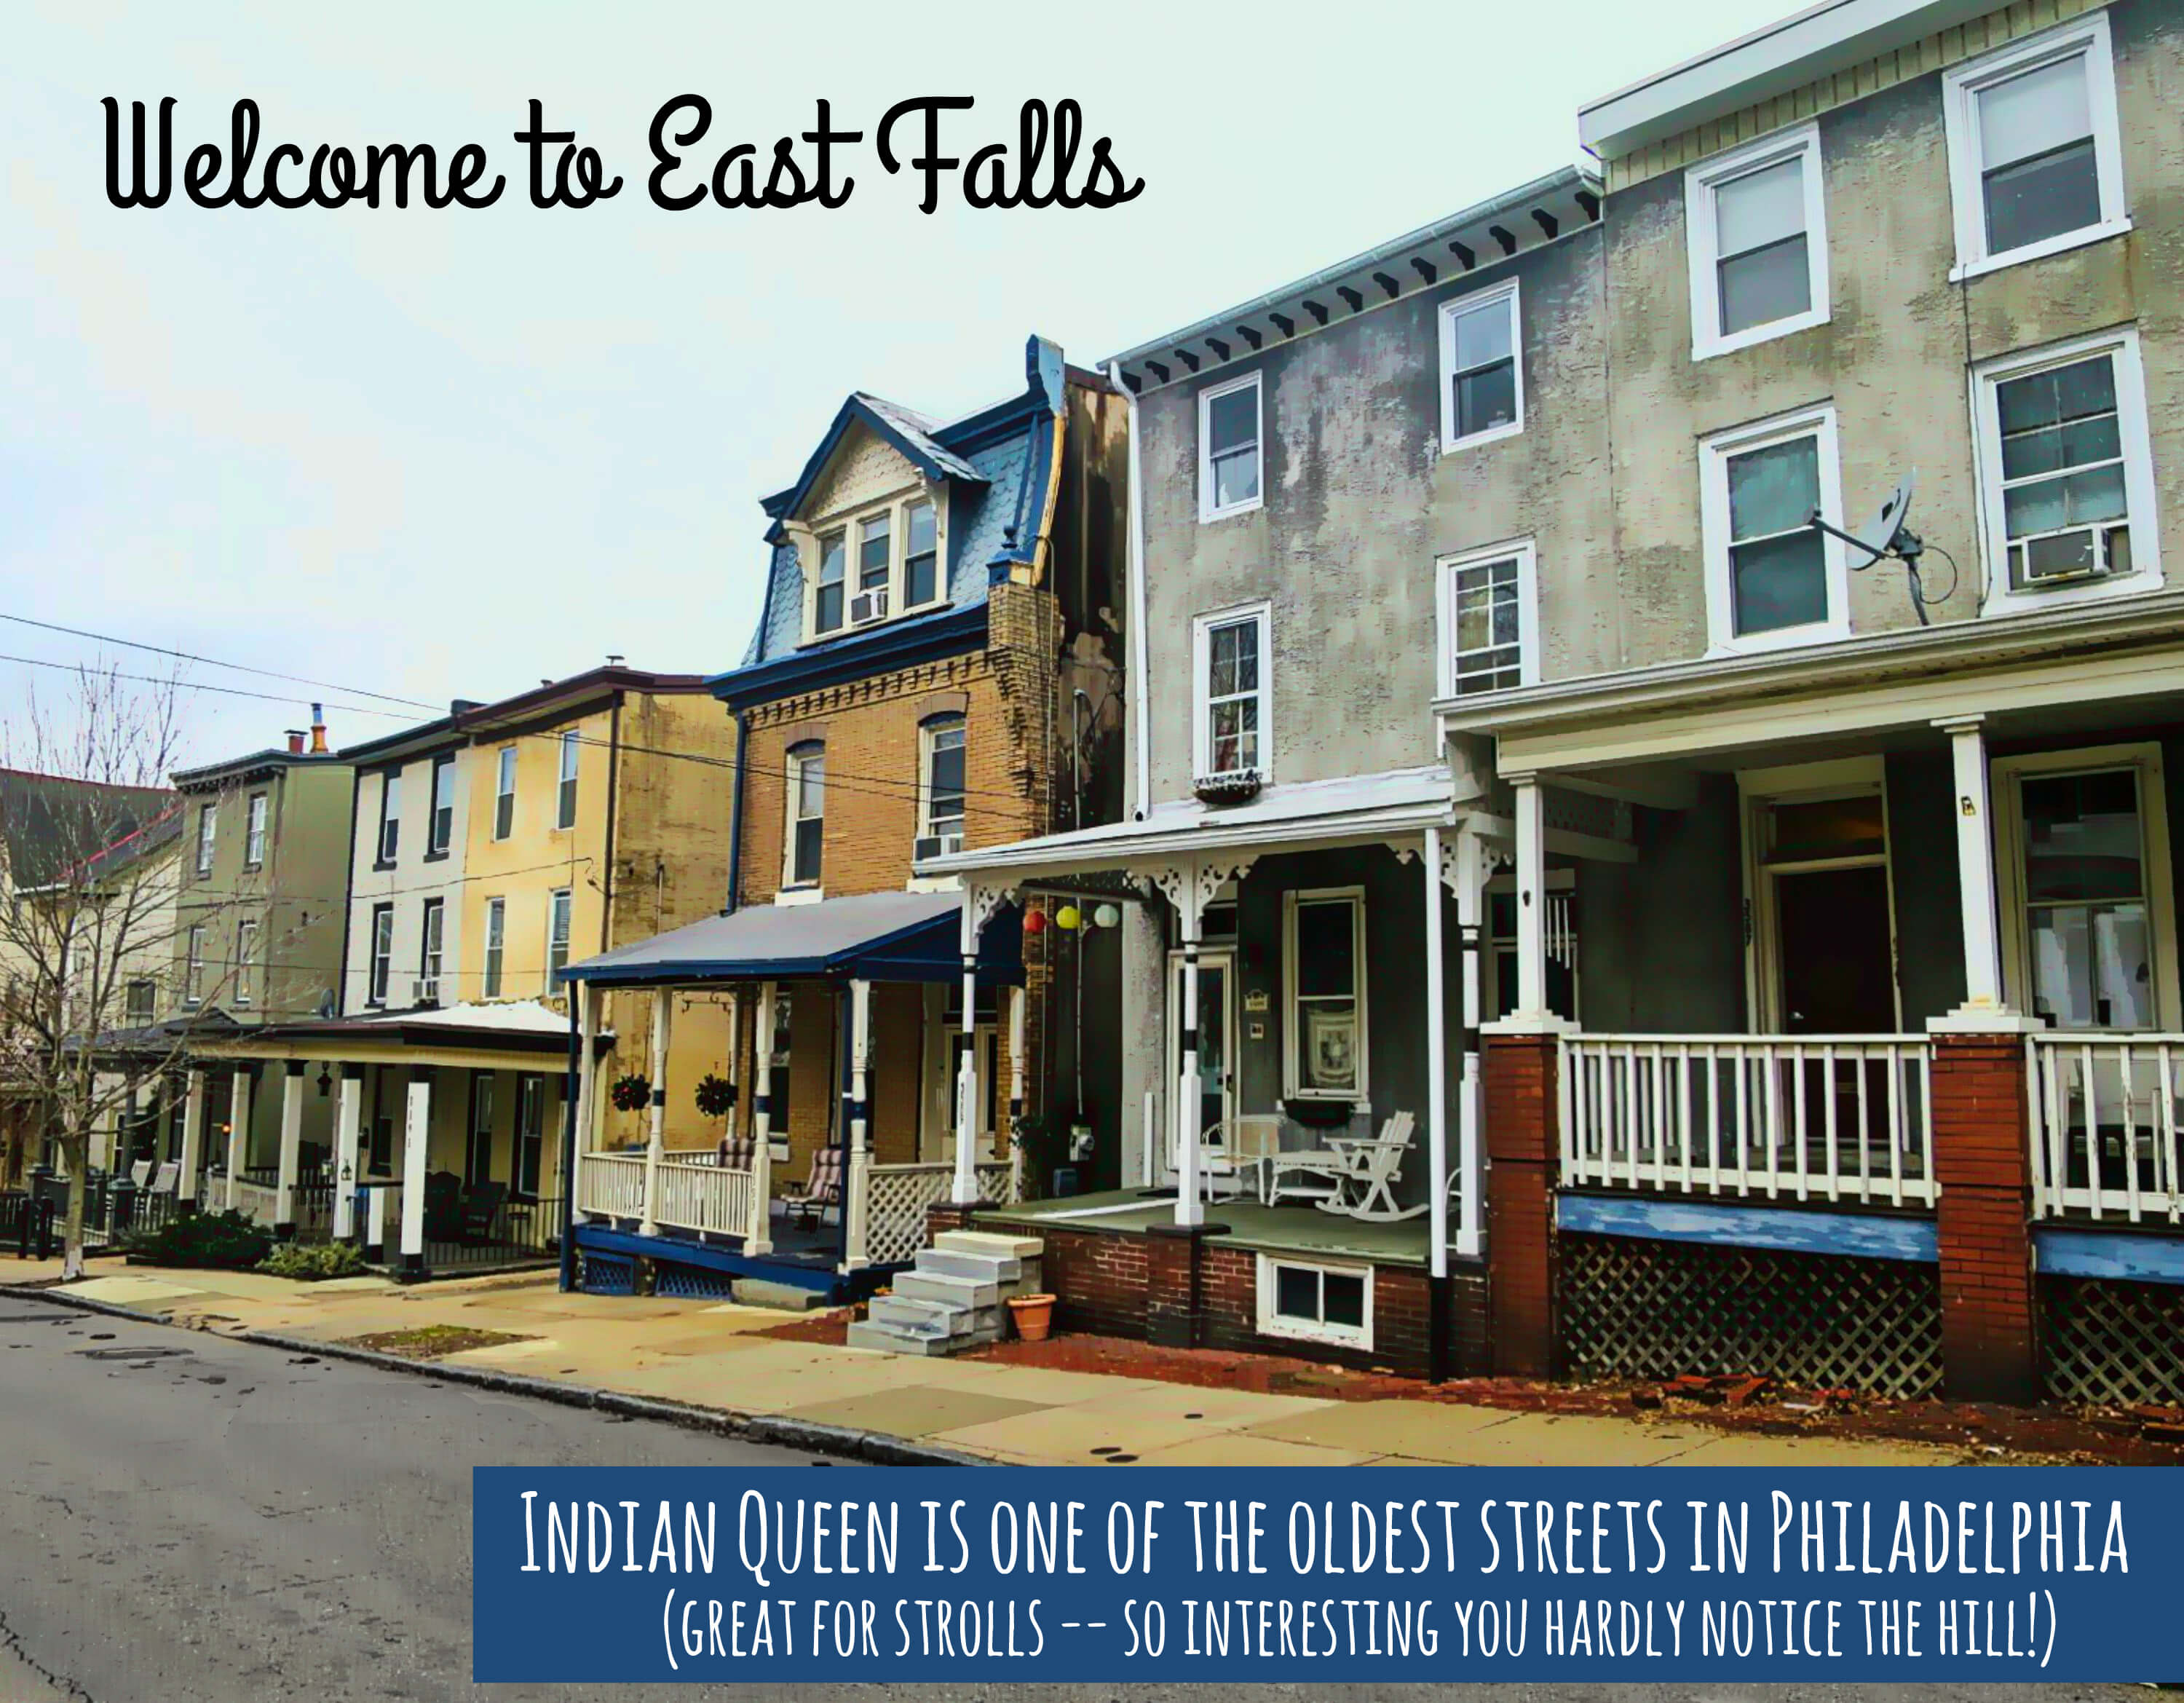 EastFallsLocal diverse architecture iql cloned sat RESIZE text more